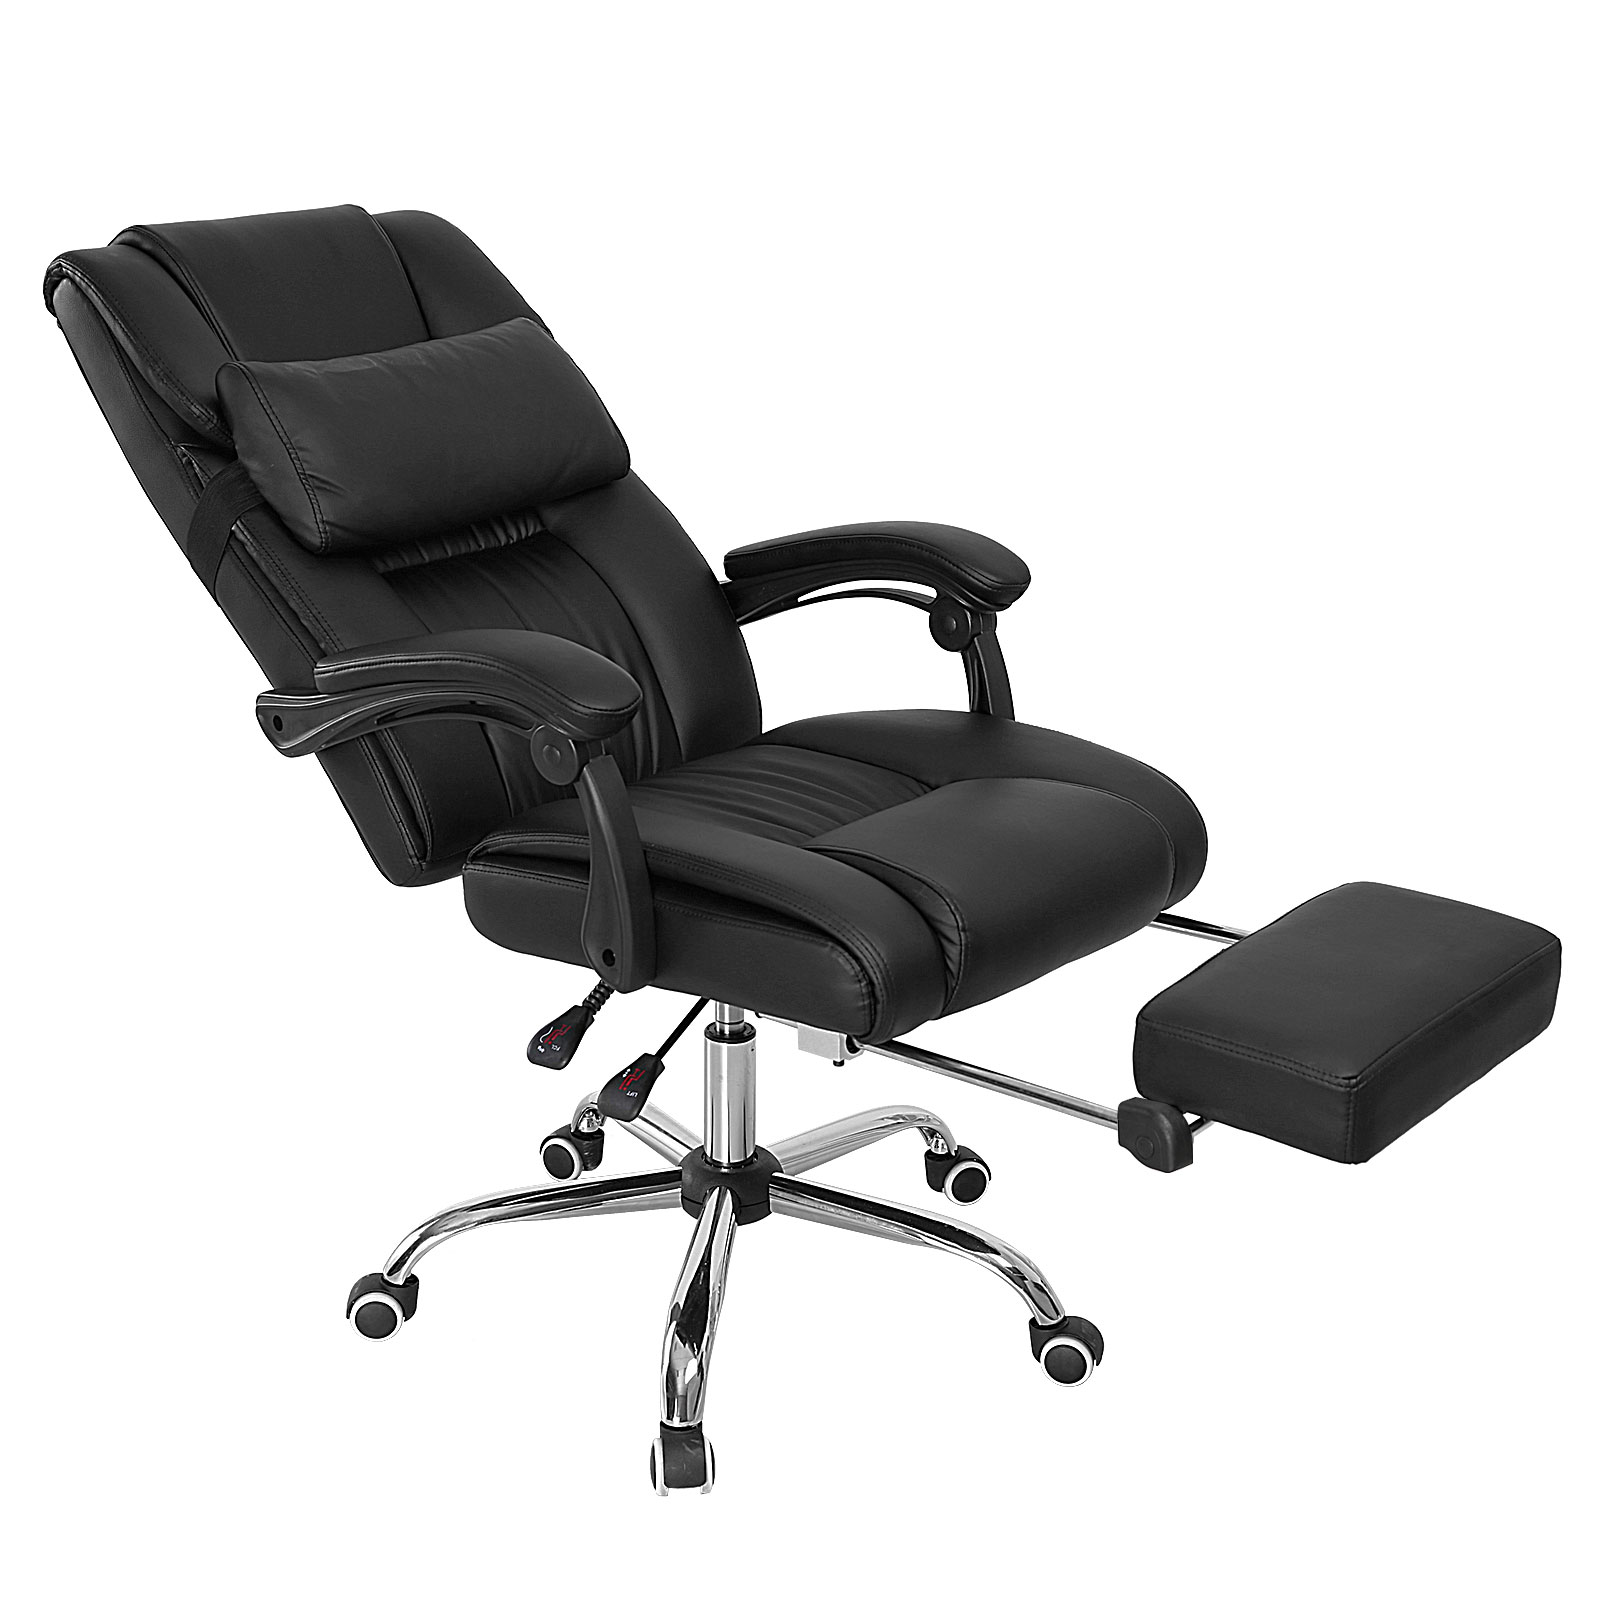 office chair executive recliner tilt computer padded seat footrest